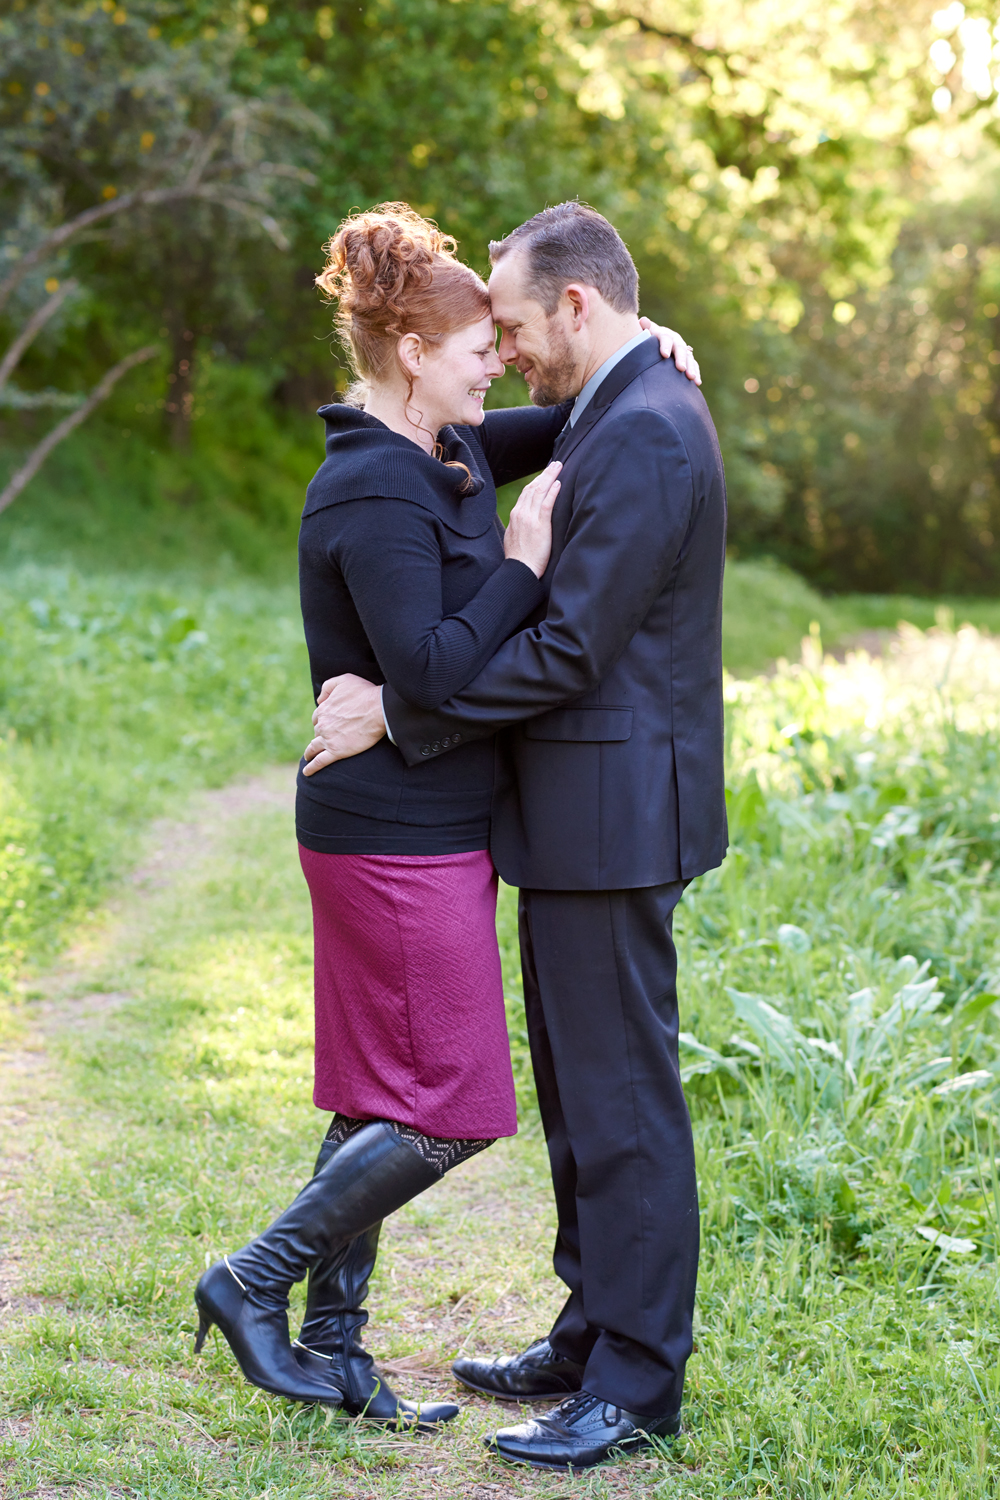 Mullens-Raley-Engagement-18-WEB.jpg